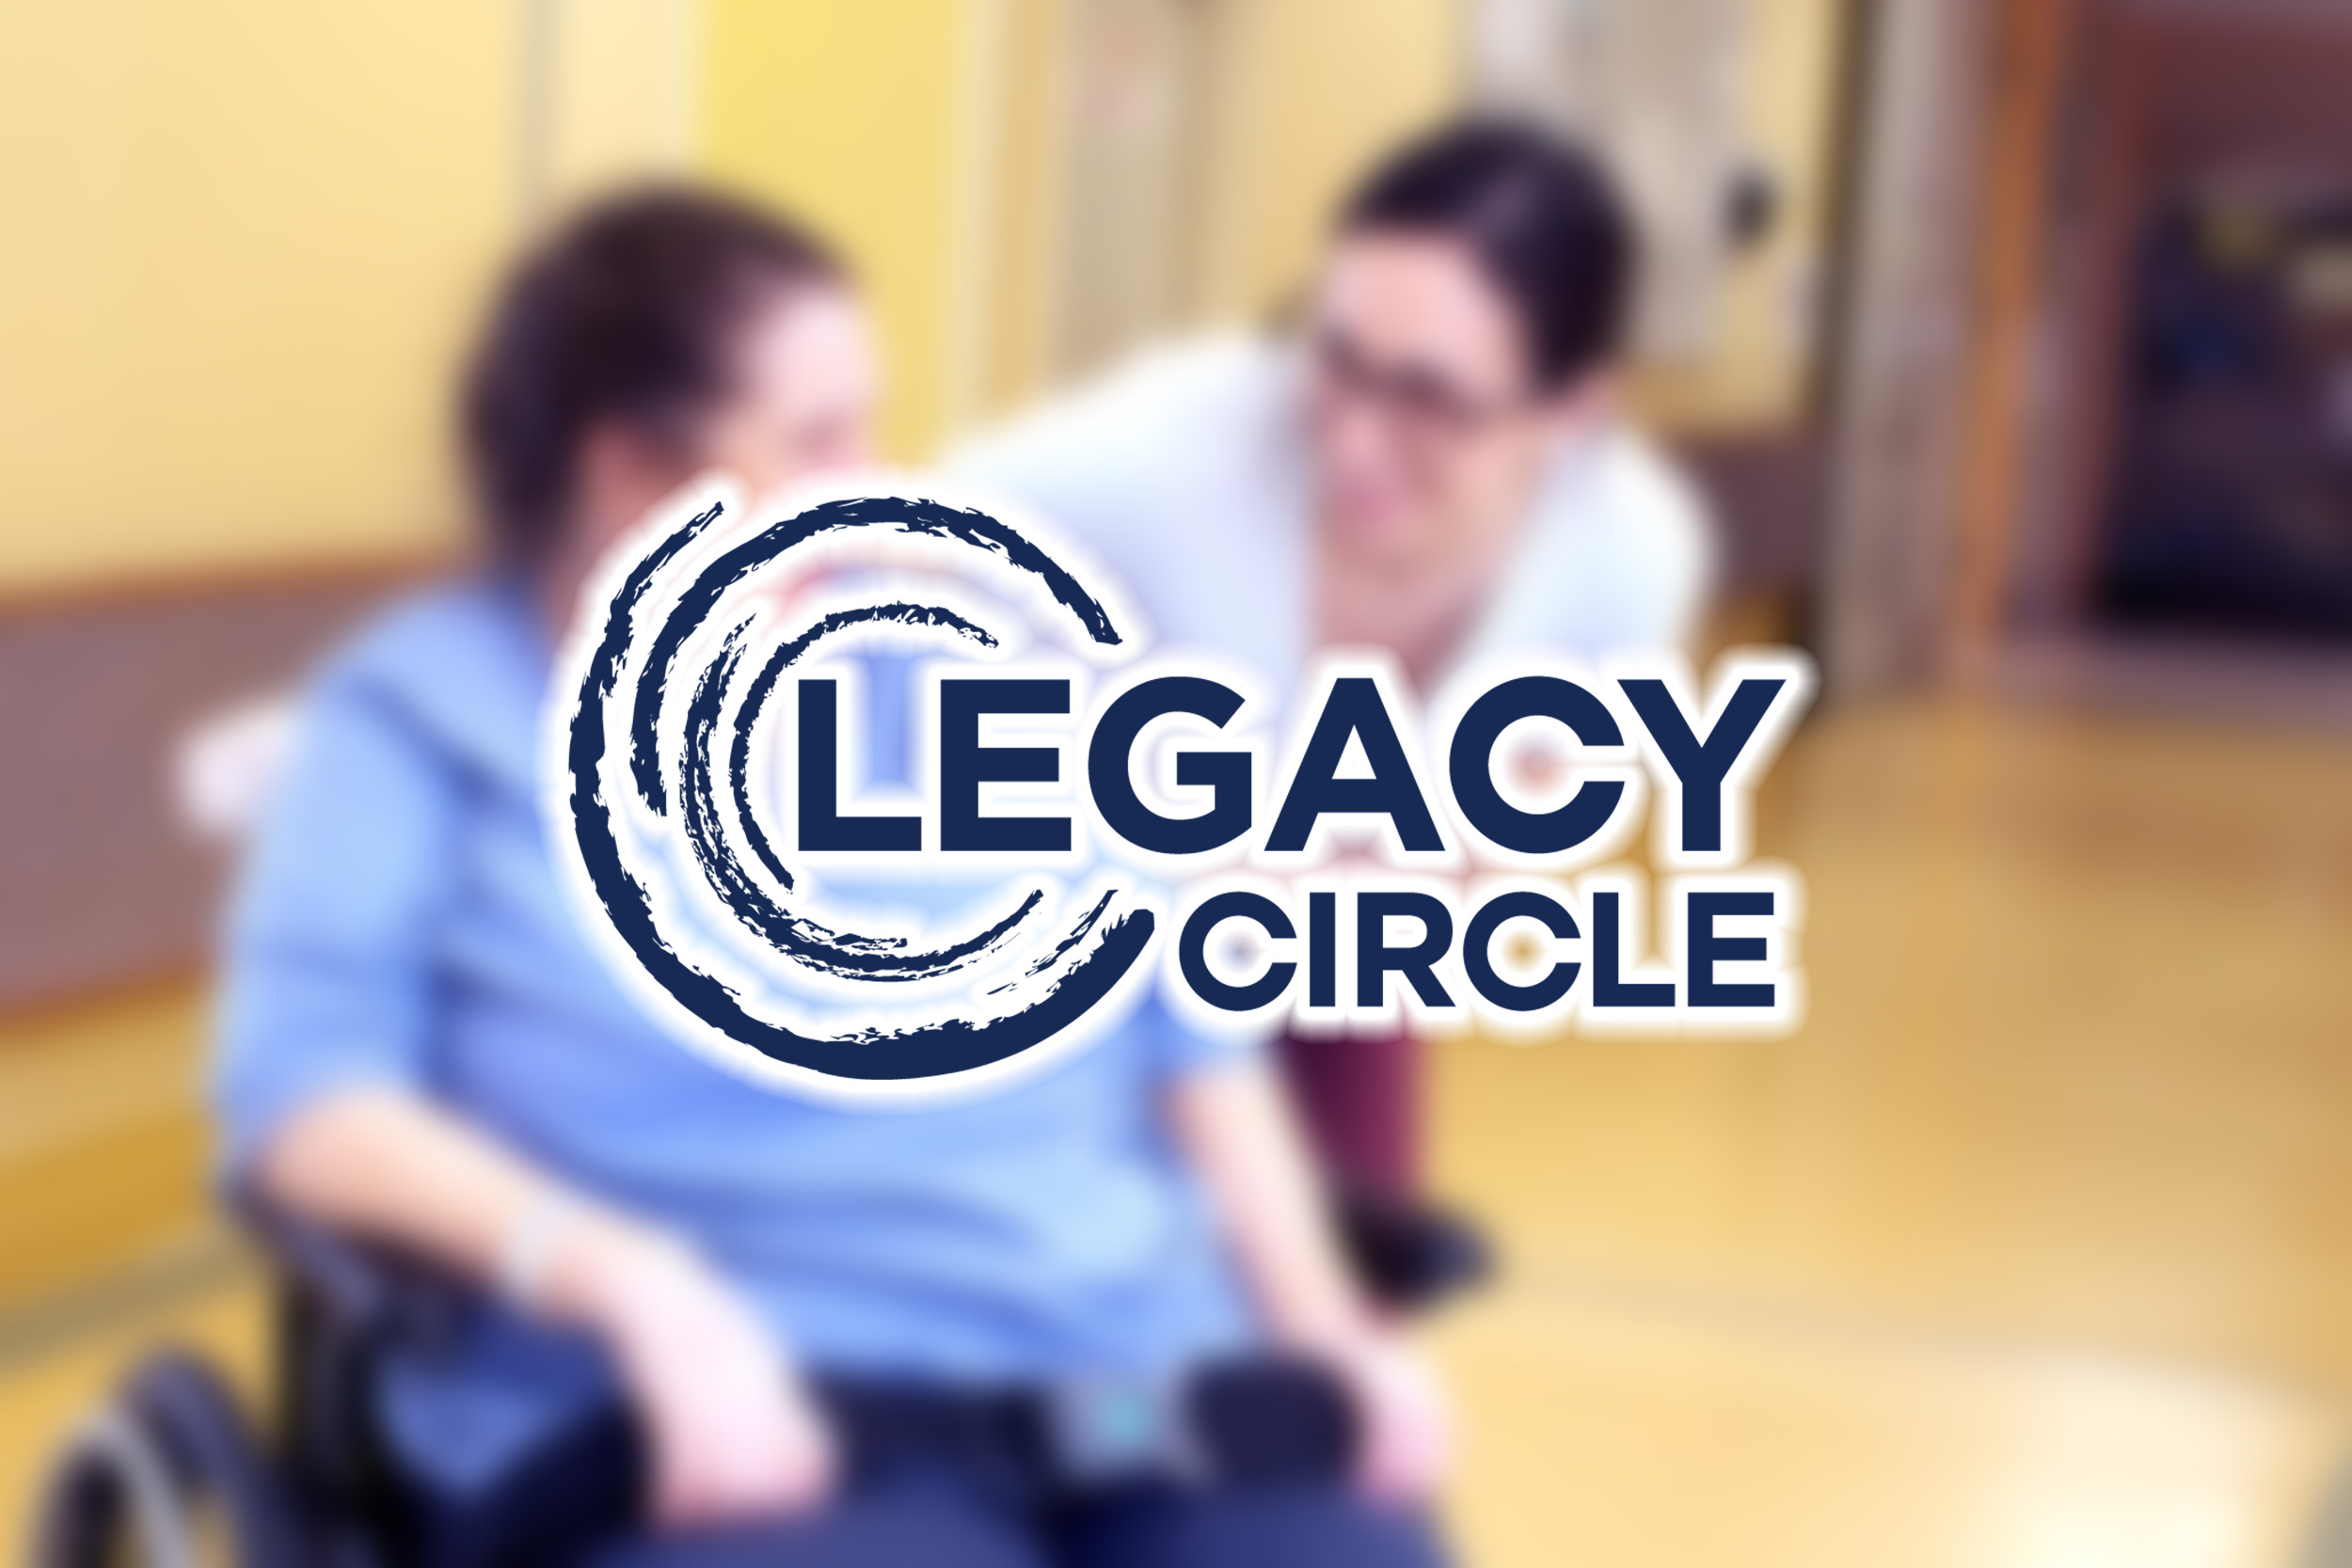 The Legacy Circle logo on a blurred image background